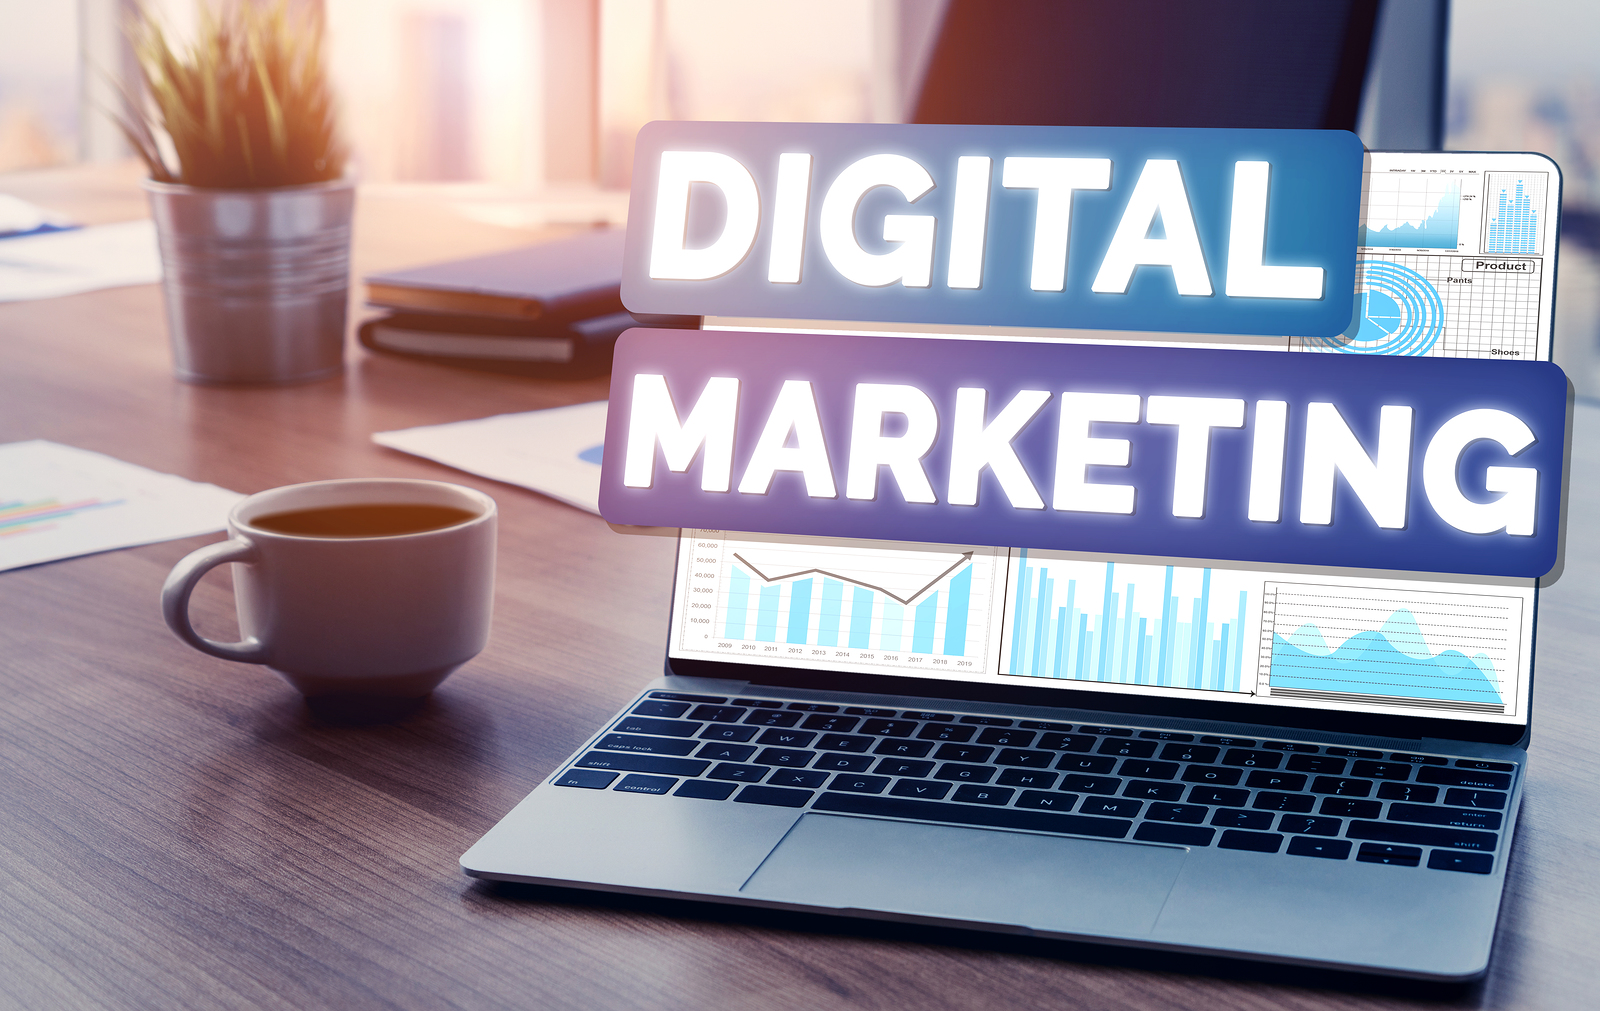 Free Digital Marketing Resources to Utilize During COVID-19